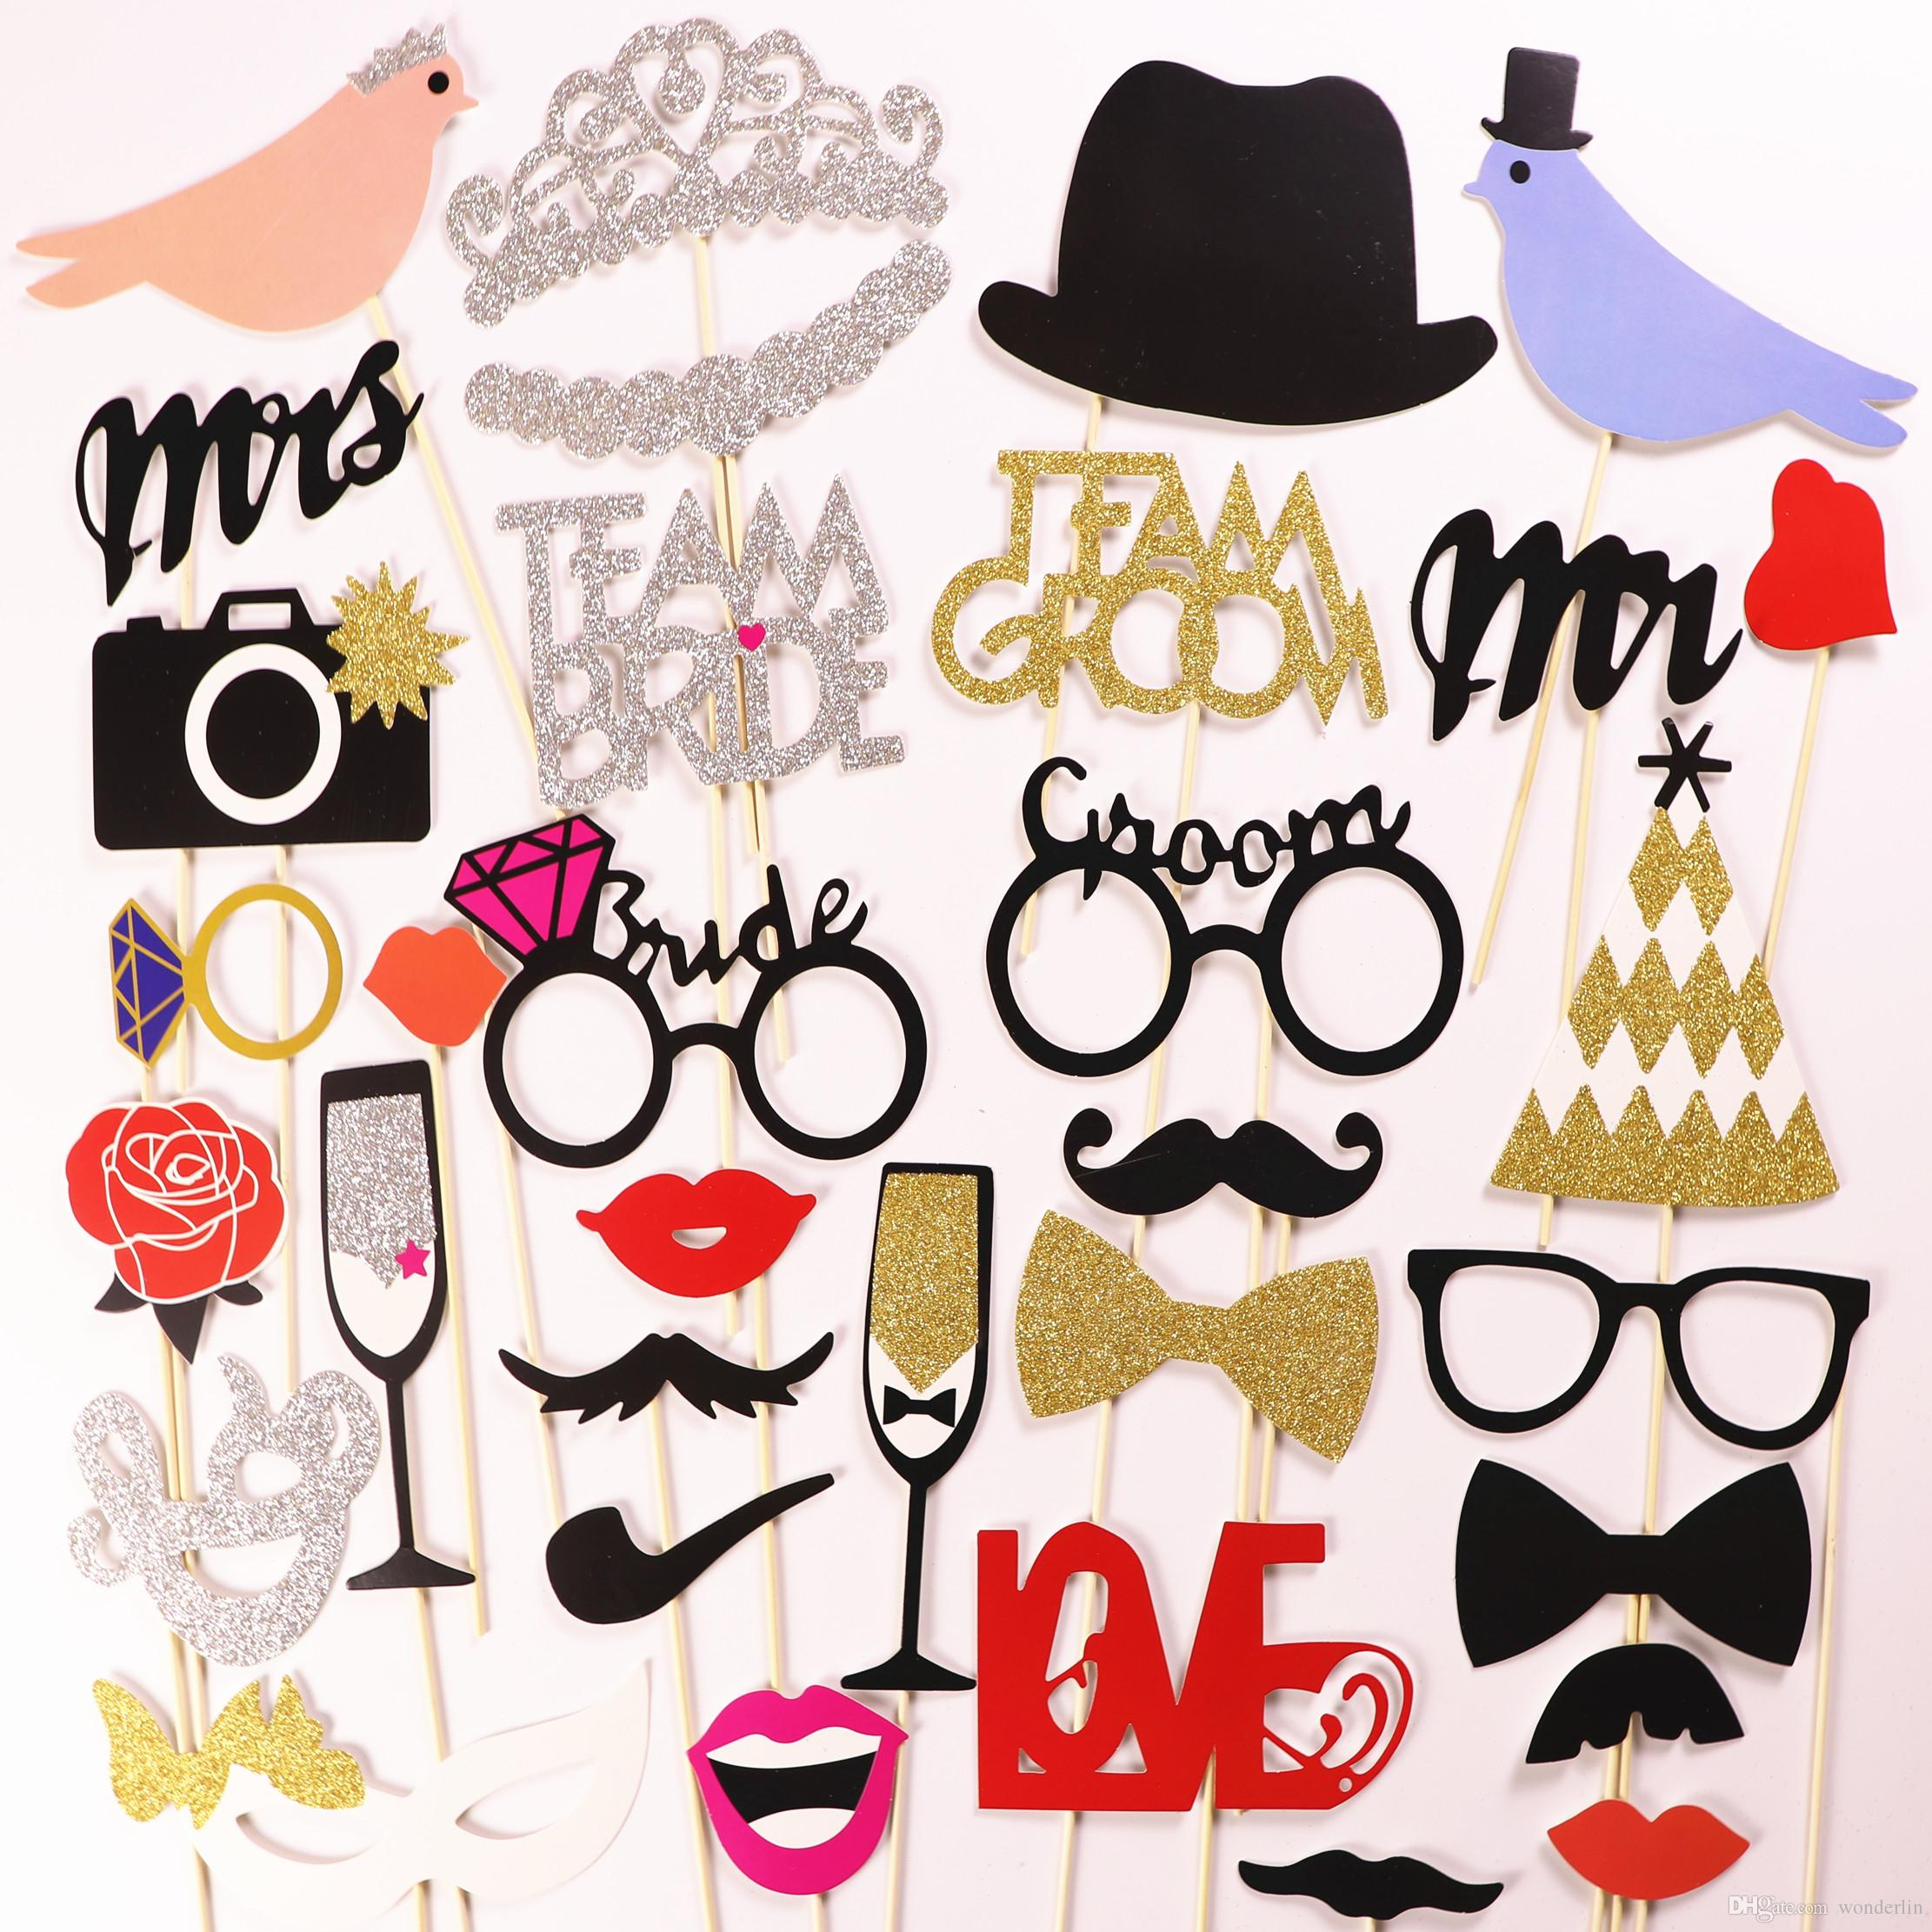 2019 Photo Booth MrMrs Just Married Photobooth Props